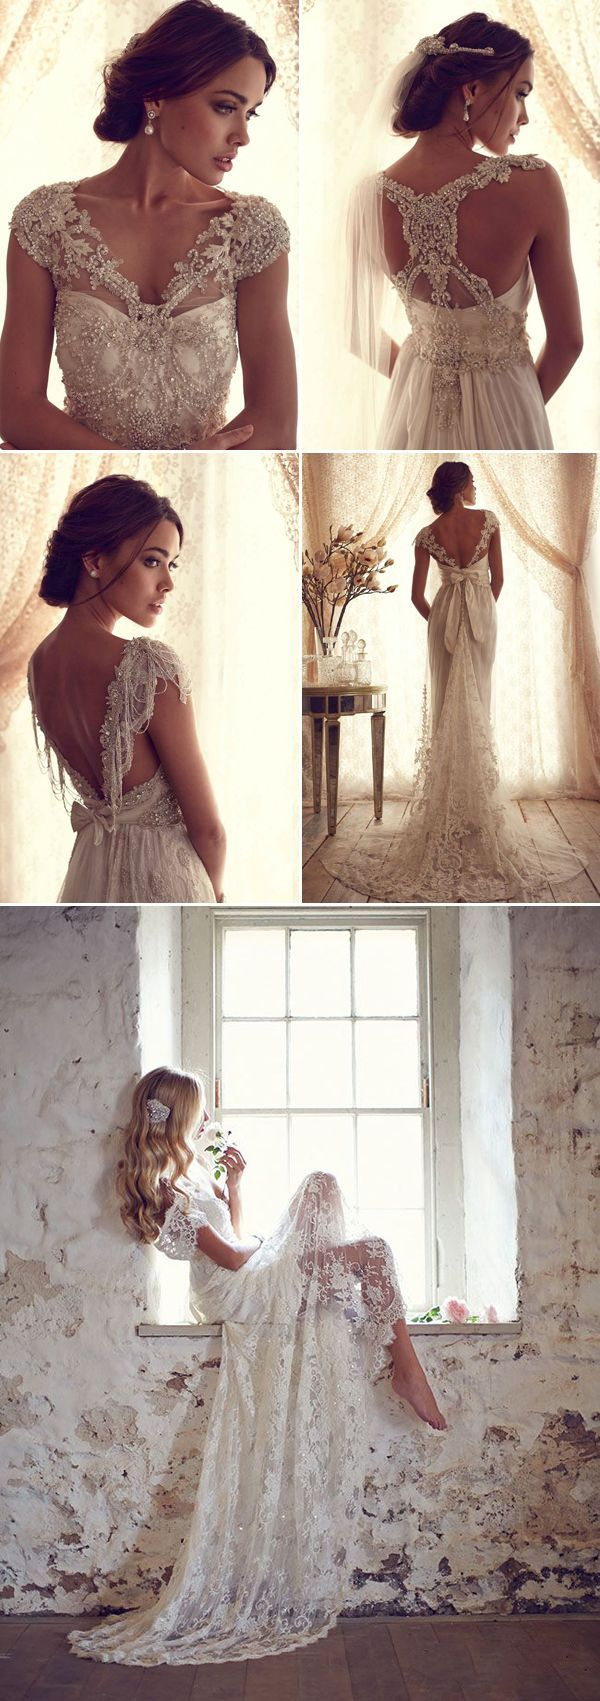 Gothic style wedding dresses   Best Vintage Wedding Dresses  Vintage style wedding dresses